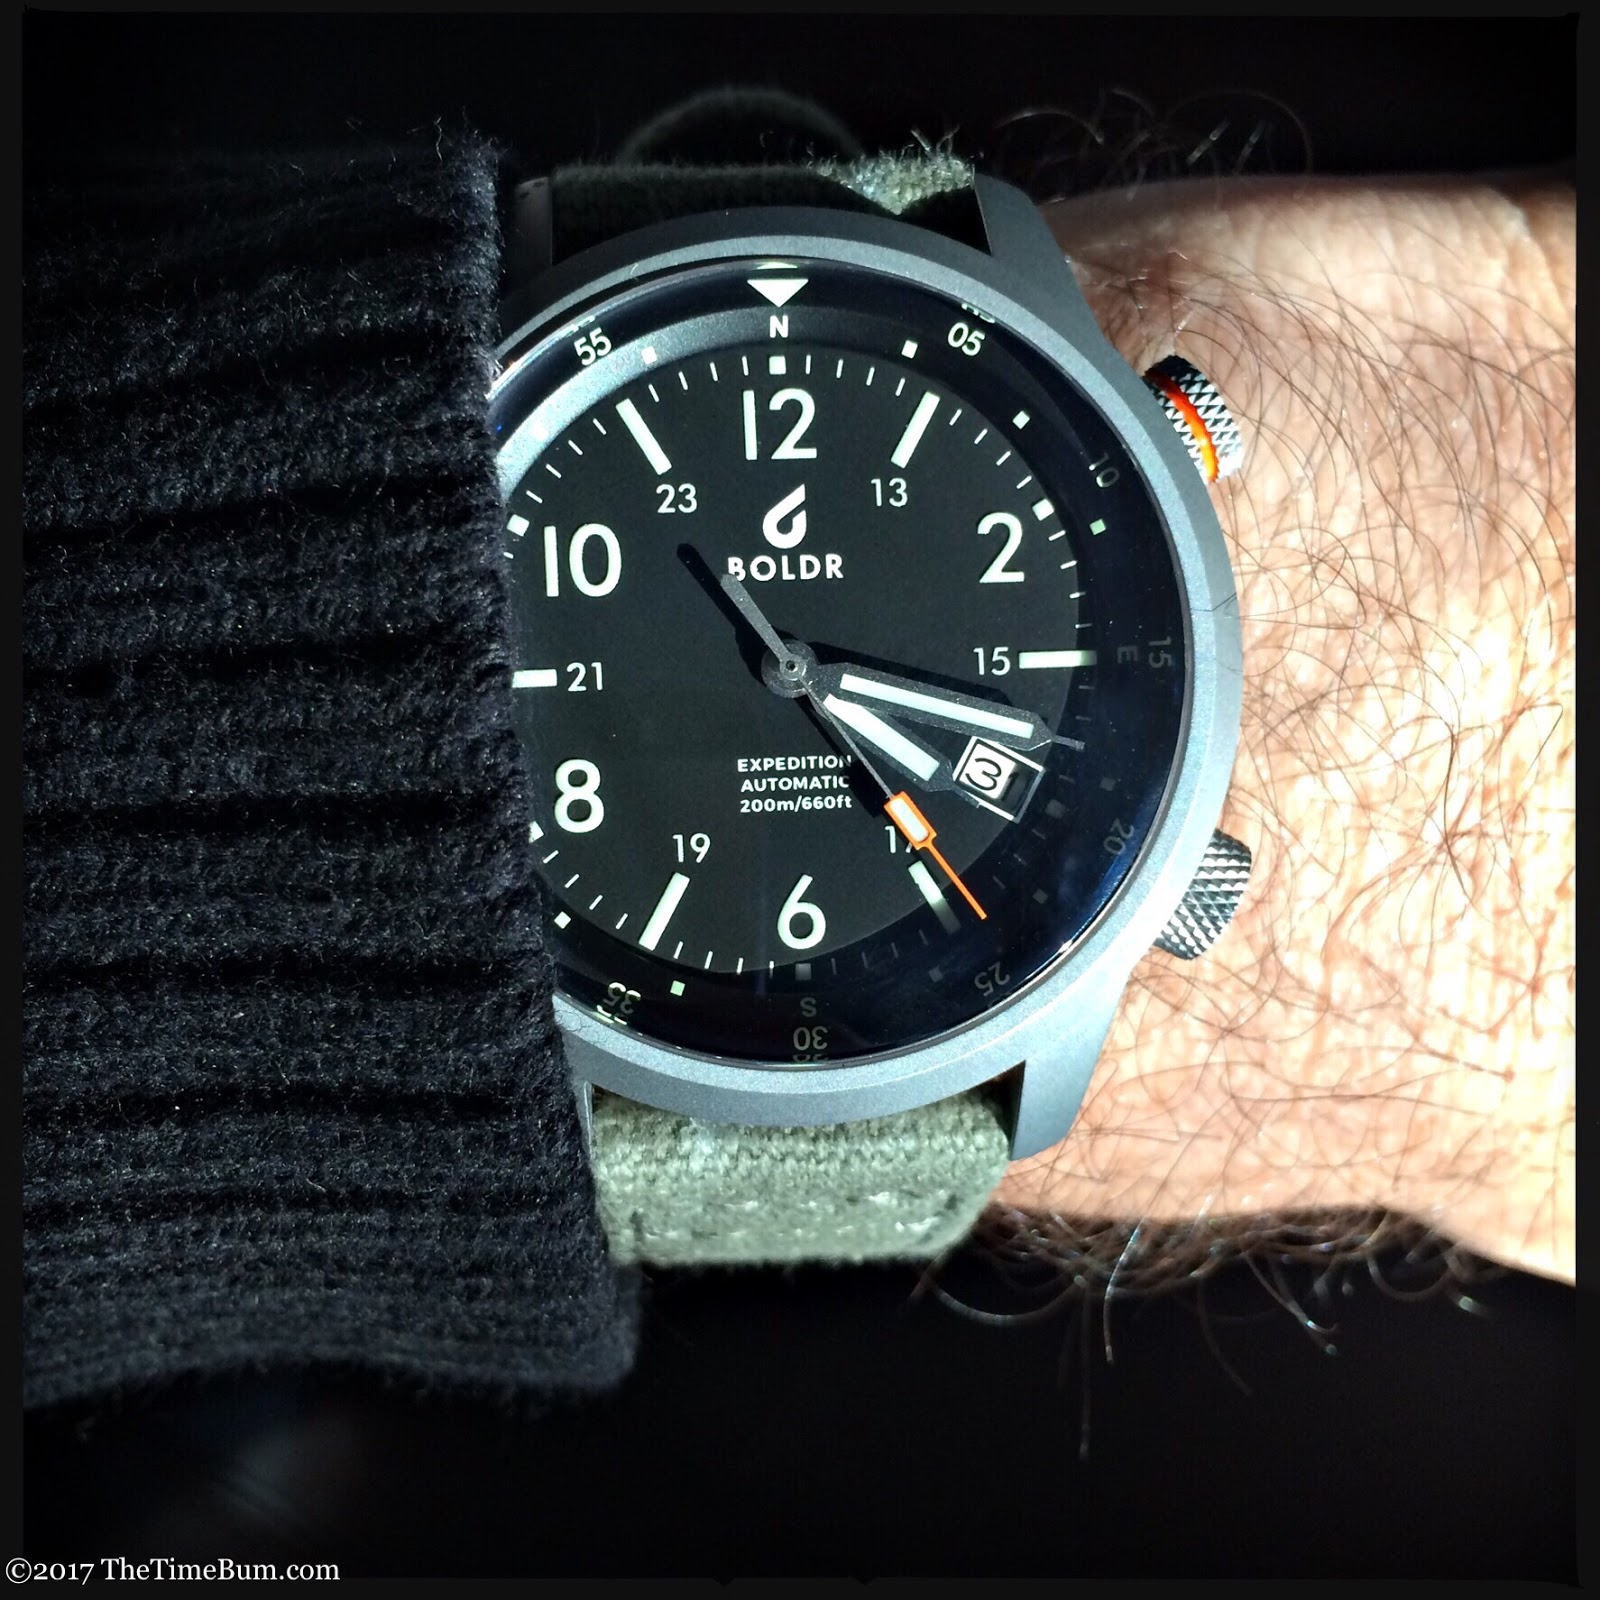 BOLDR Expedition Rushmore wrist